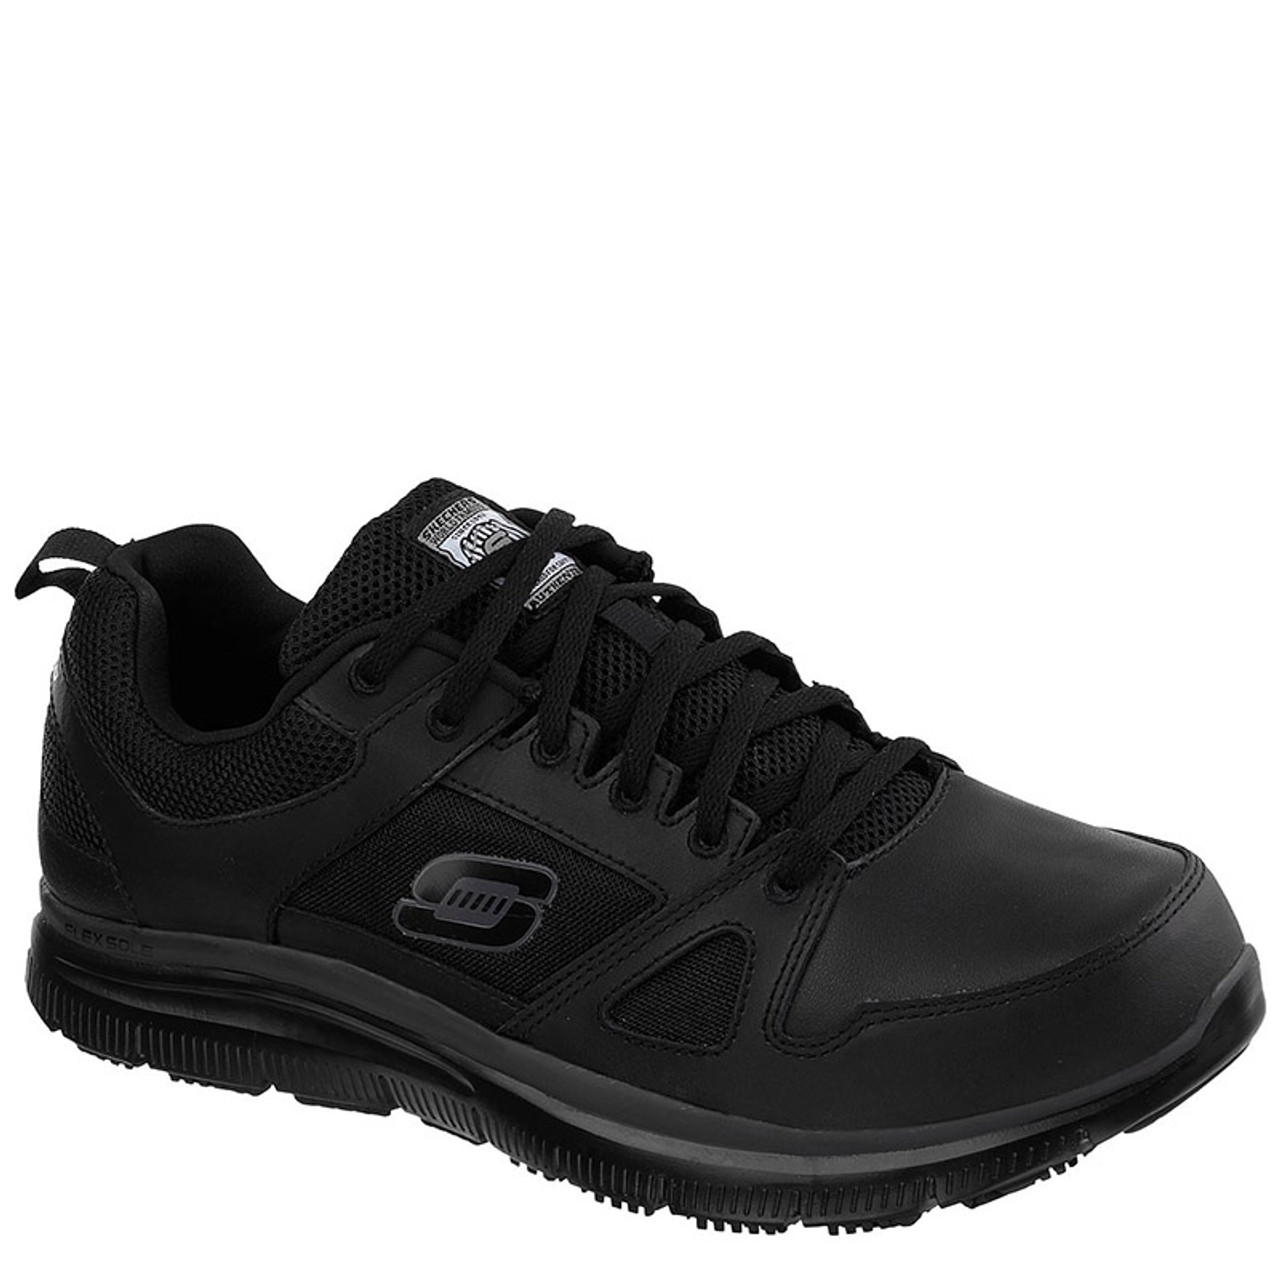 new lower prices best selection of 2019 buy best Skechers 77040 FLEX ADVANTAGE Slip Resistant Work Shoes